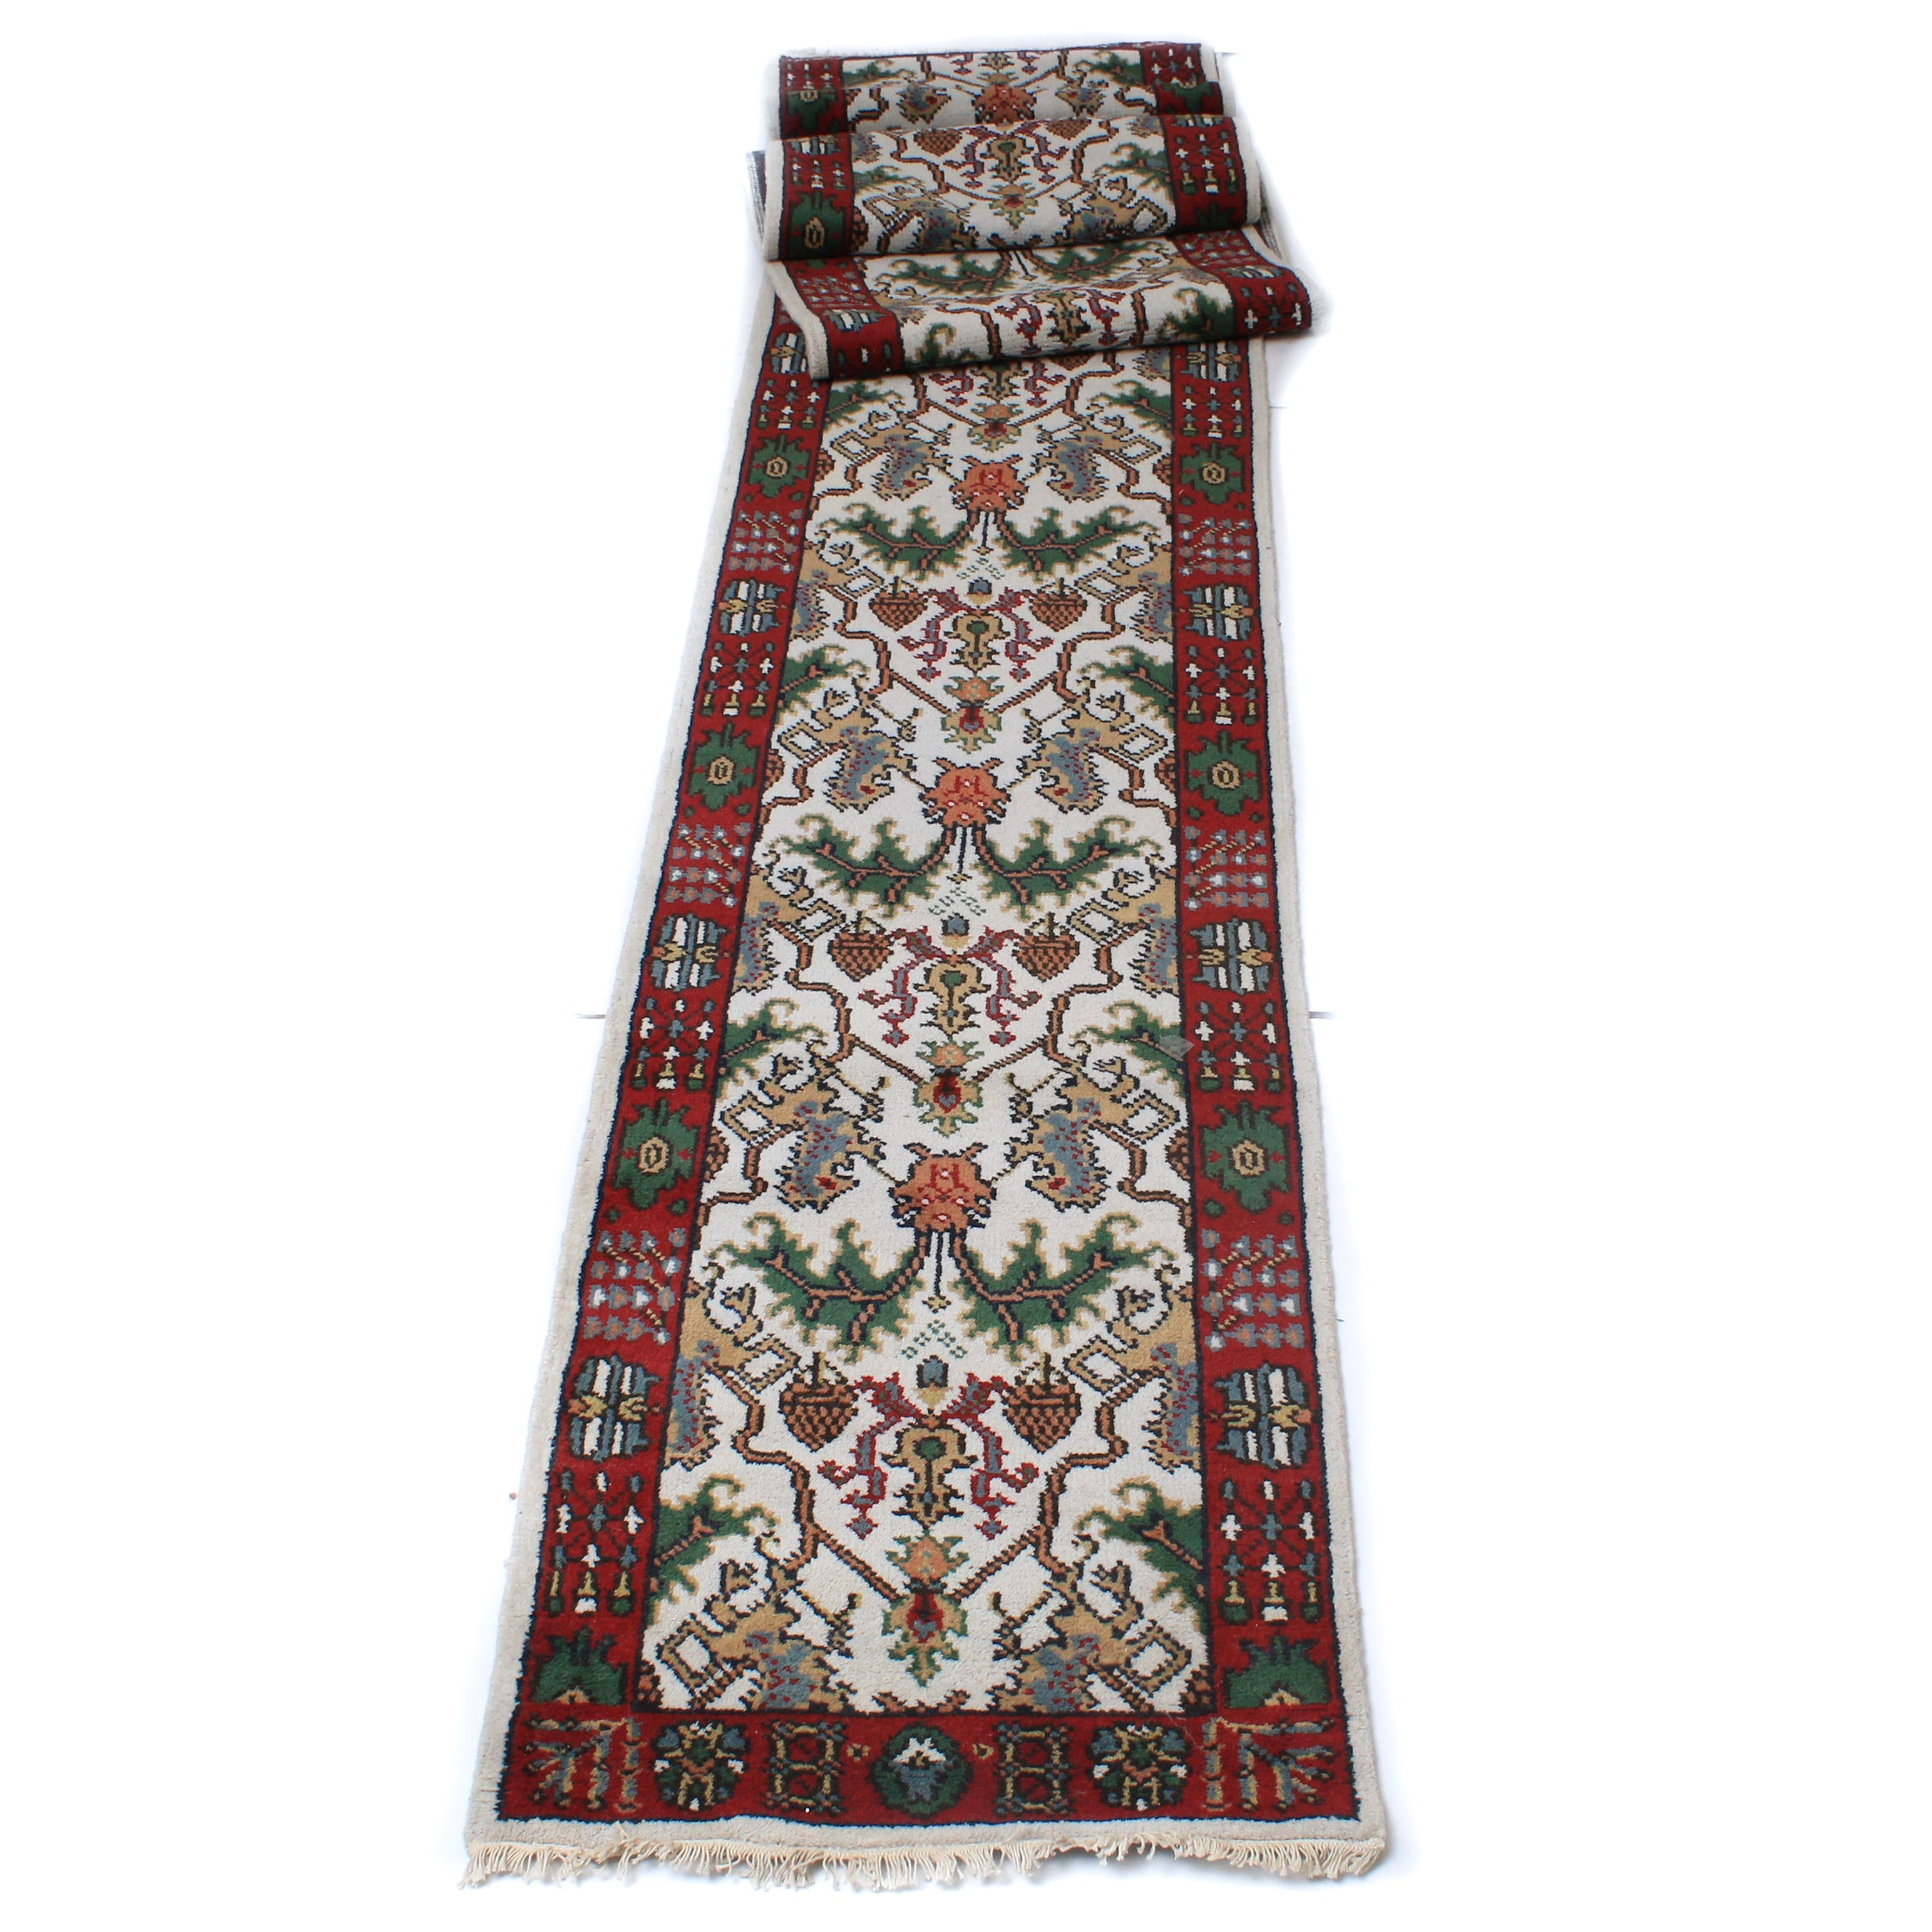 Hand-Knotted Persian Kazak Carpet Runner